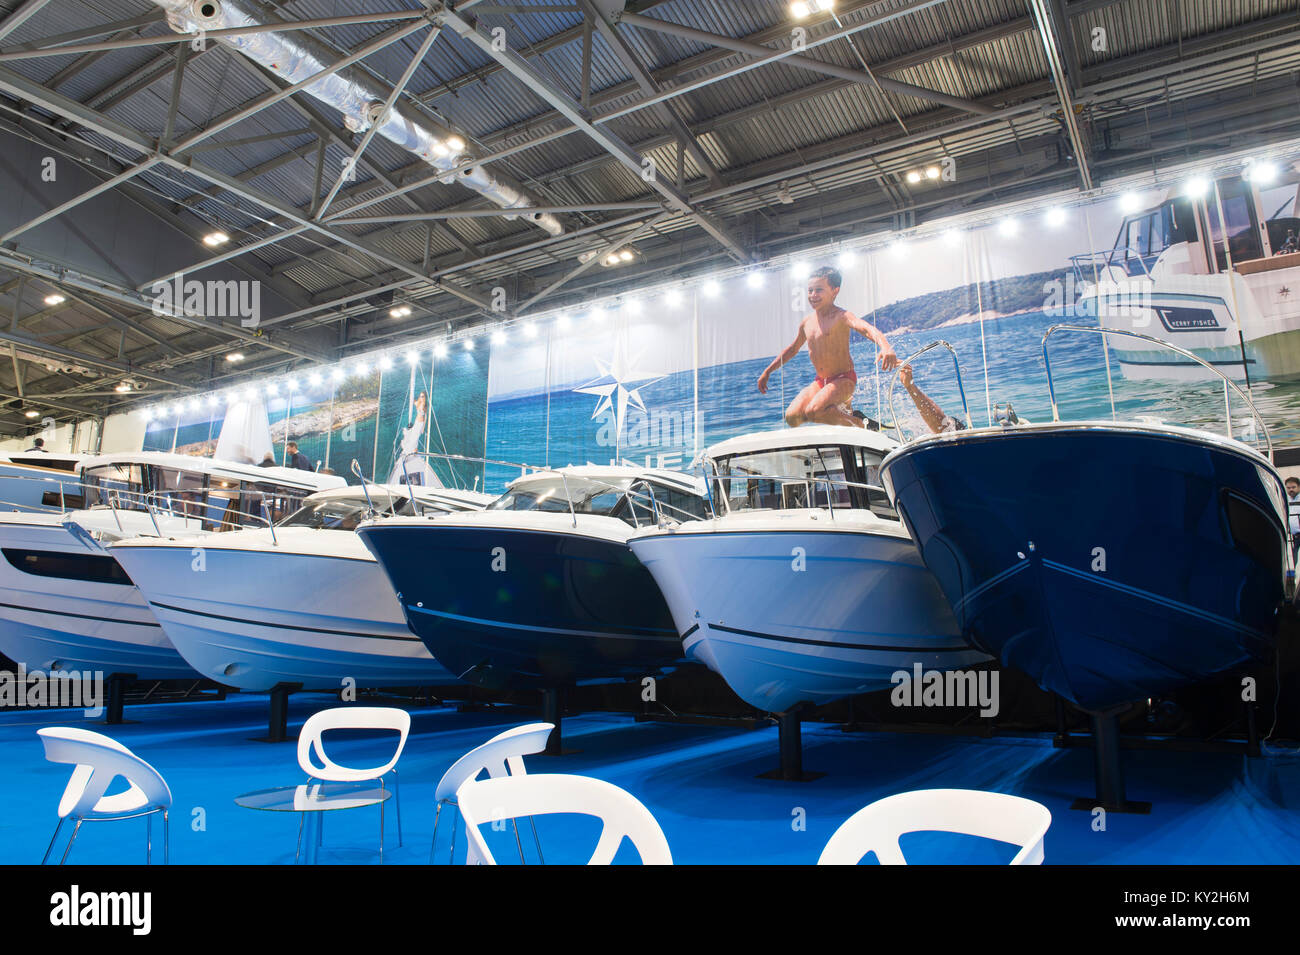 Jeanneau Boats Stand Stock Photos & Jeanneau Boats Stand Stock